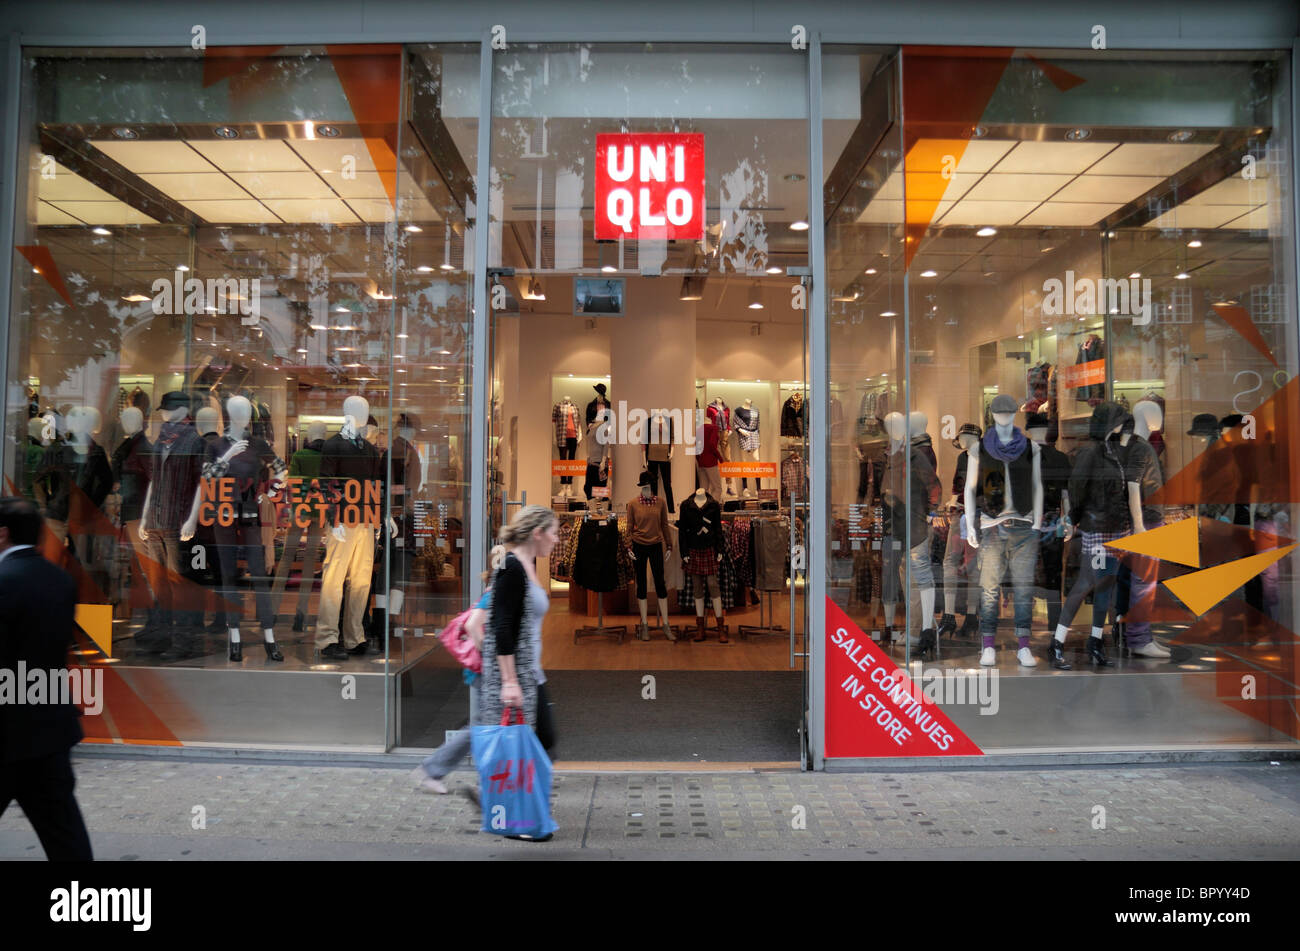 Street view of the UNIQLO store on Oxford Street, London, UK ...